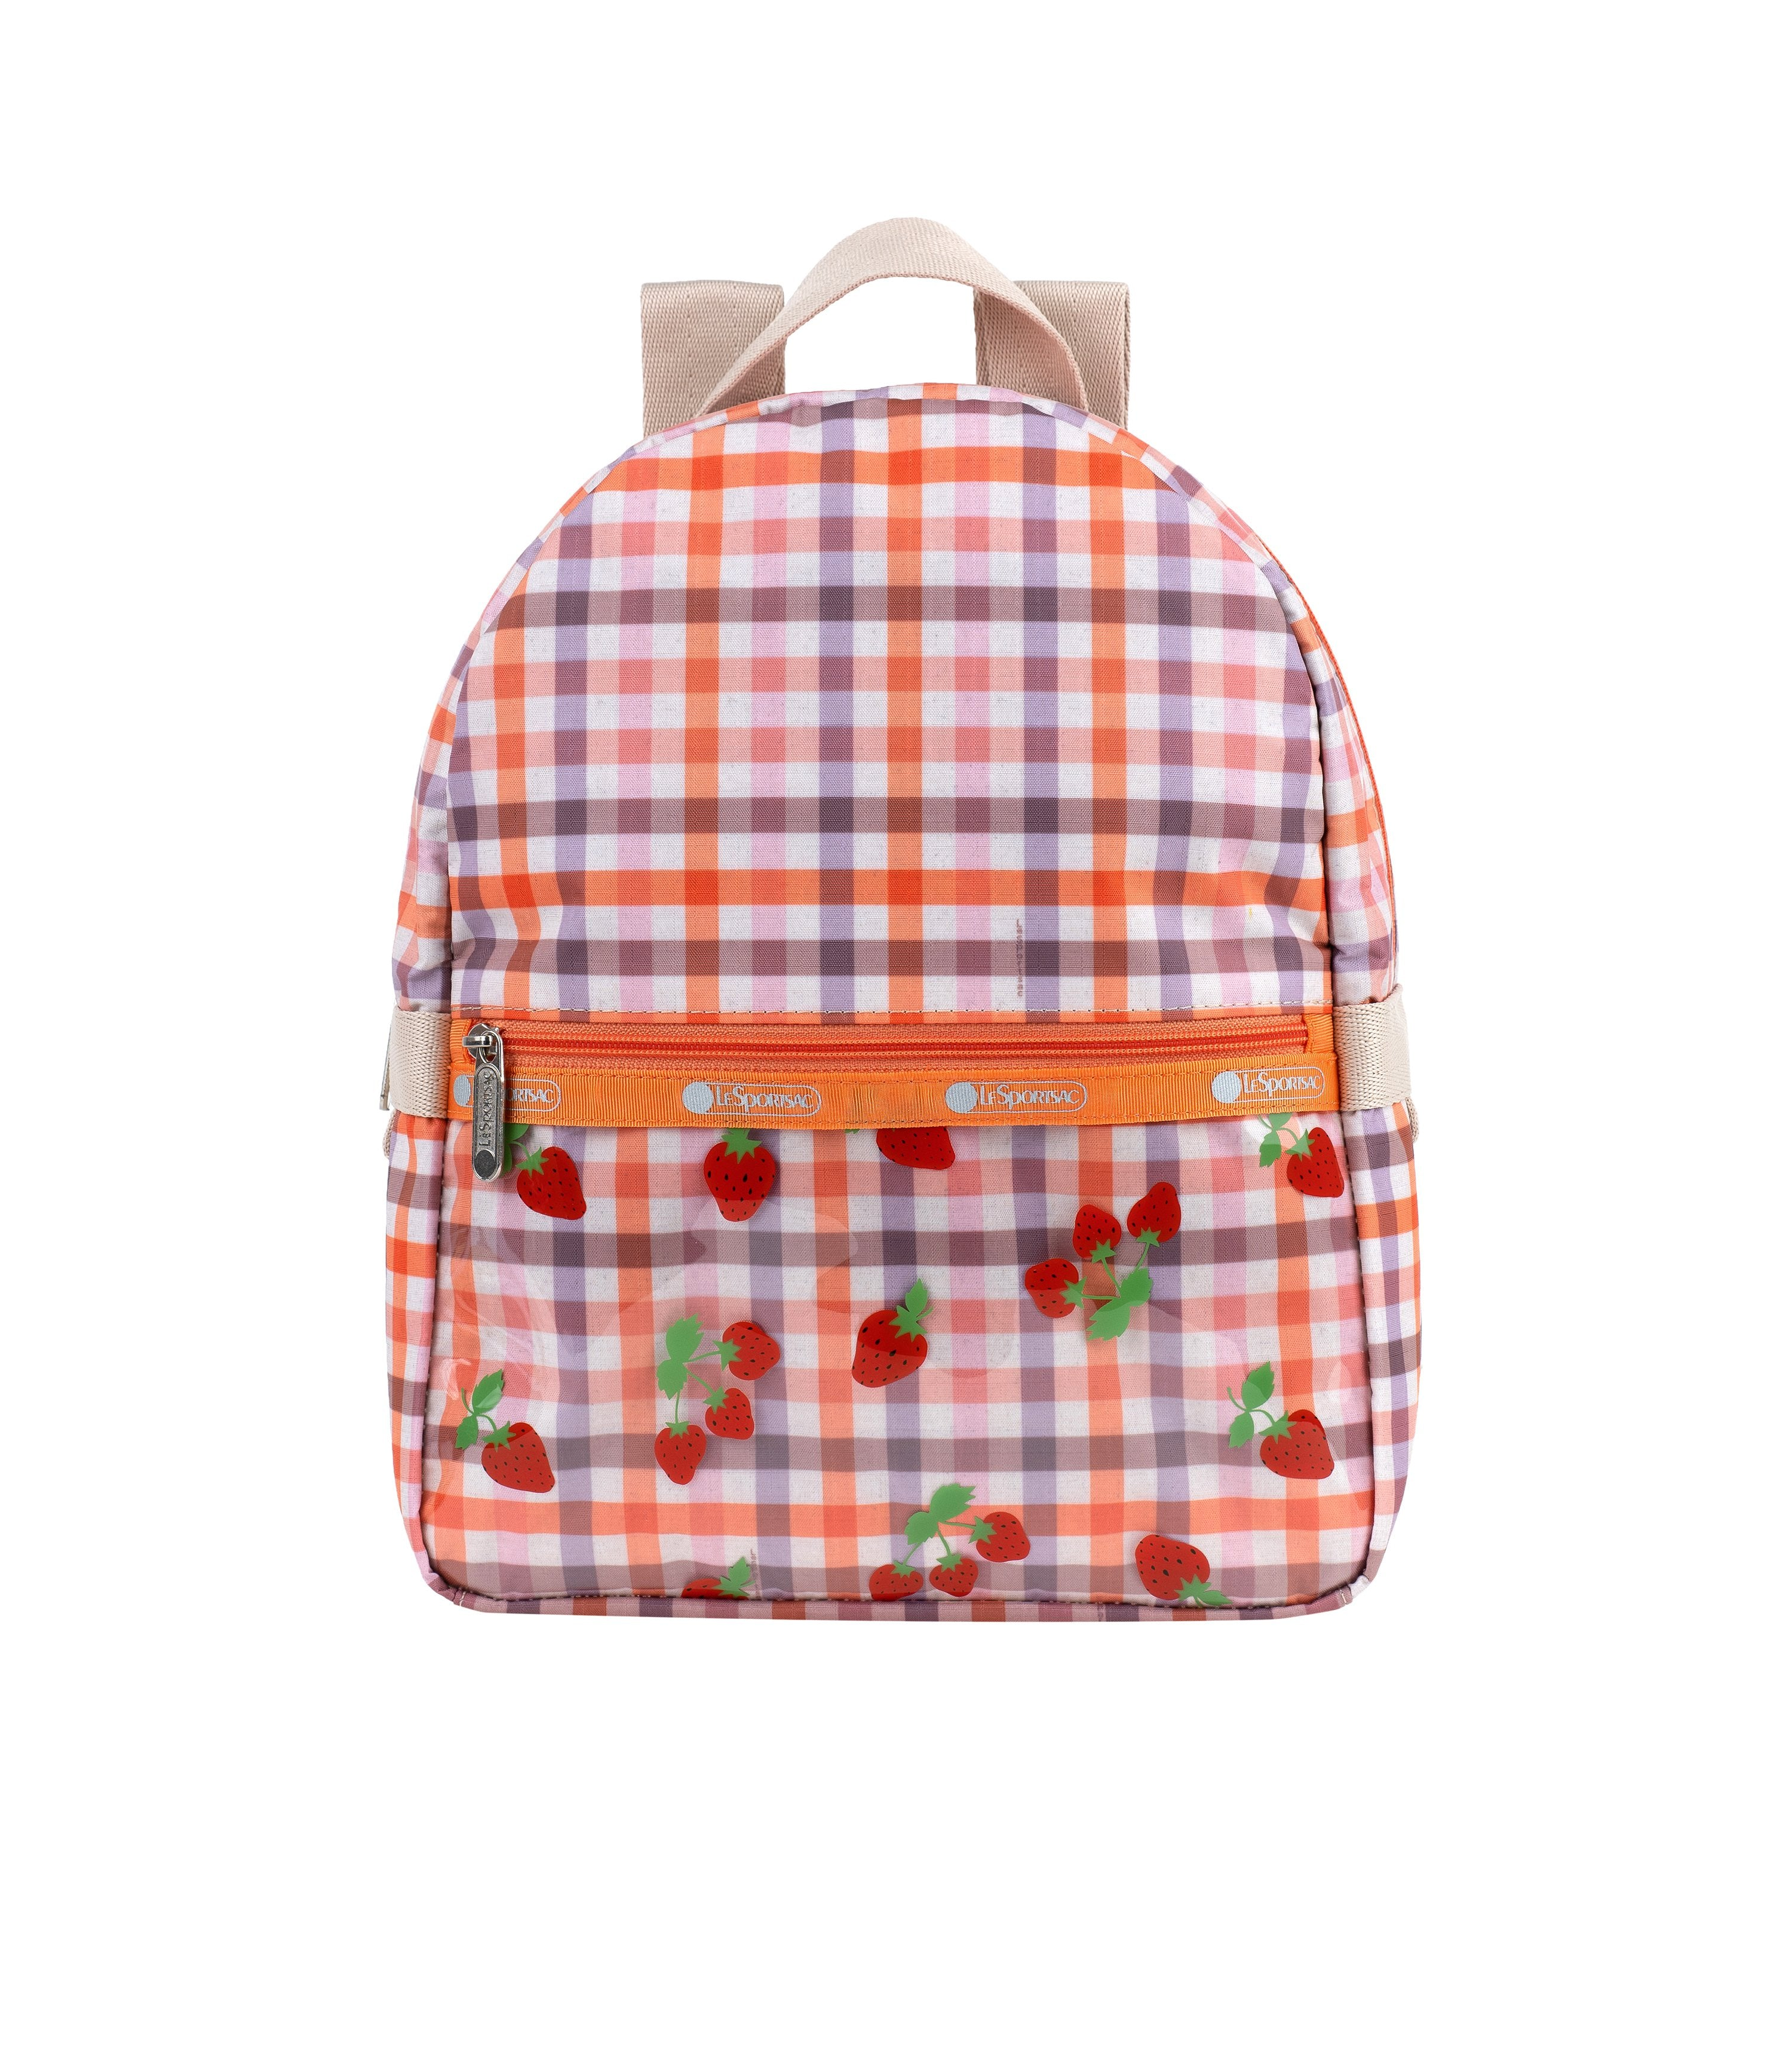 LeSportsac - Backpacks - Glass Small Carrier Backpack - Berry Basket